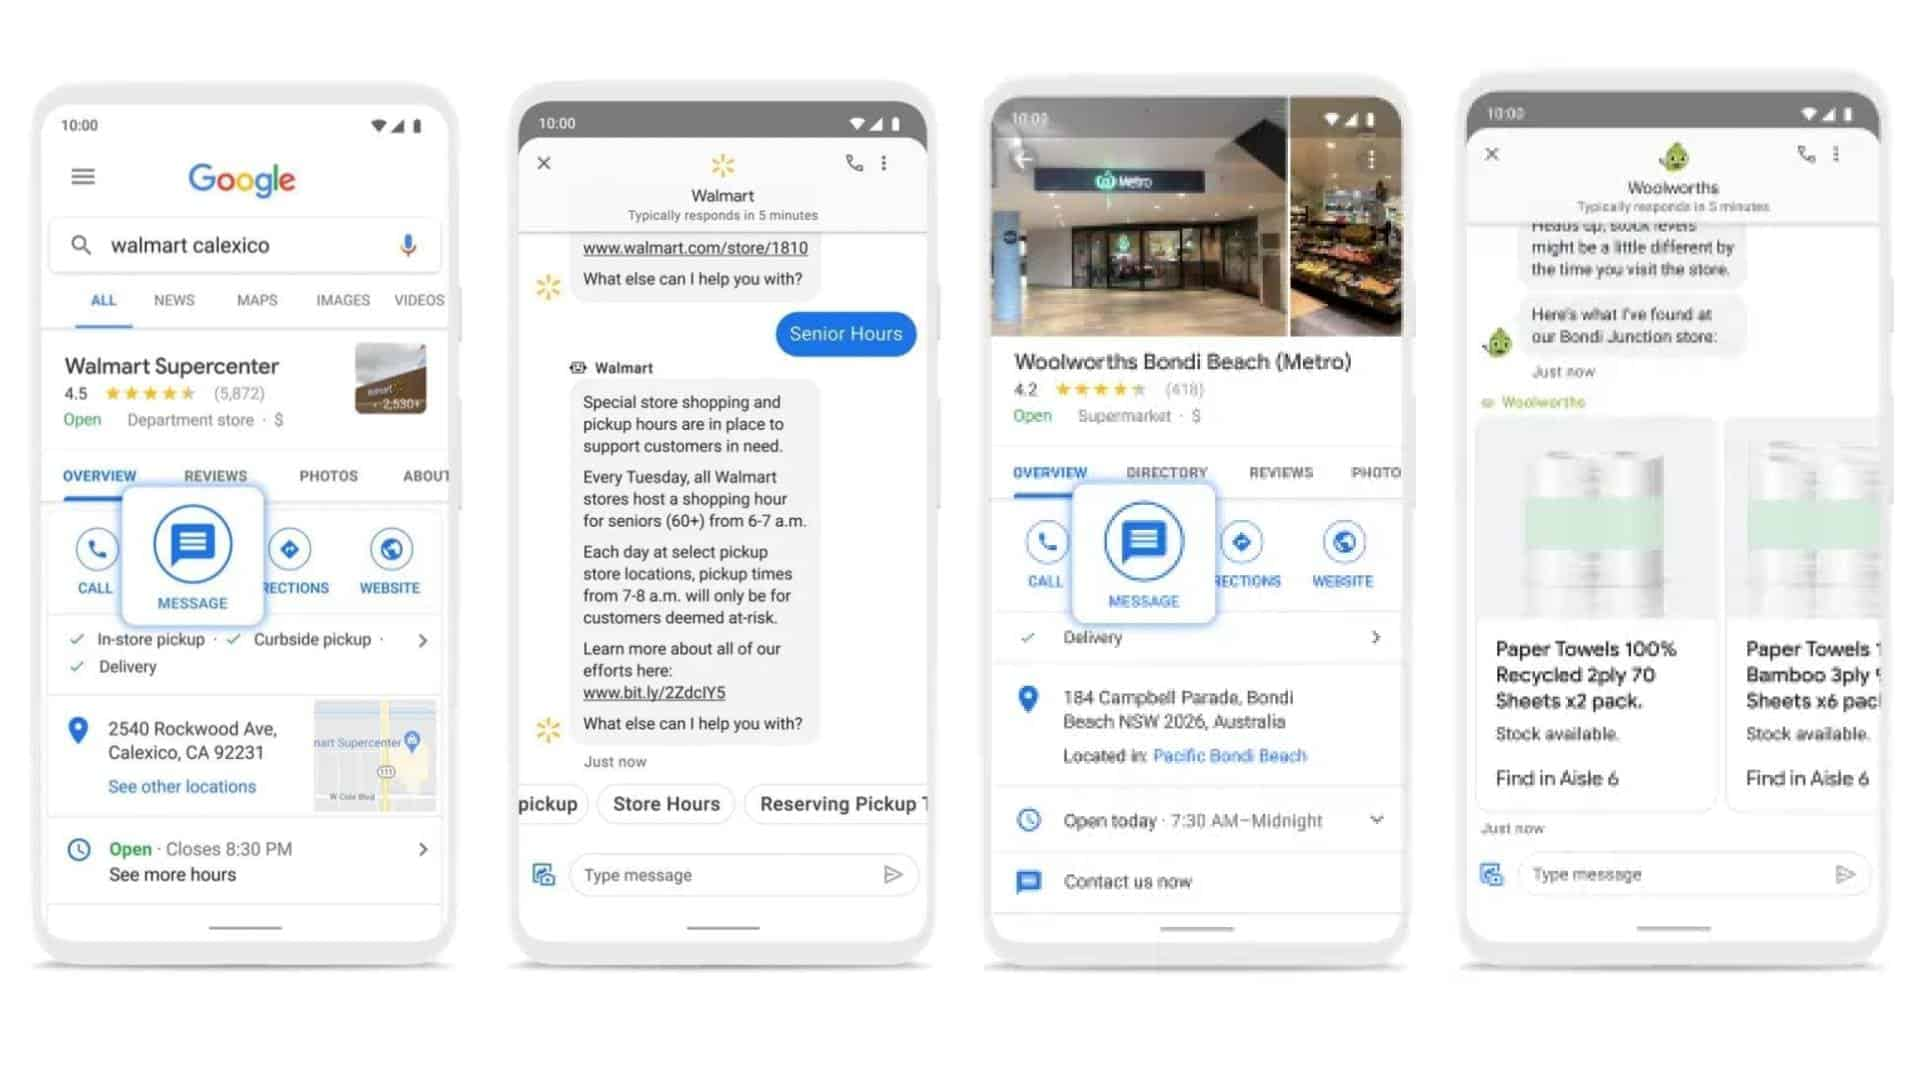 Google Search Maps Messaging Expansion pressers